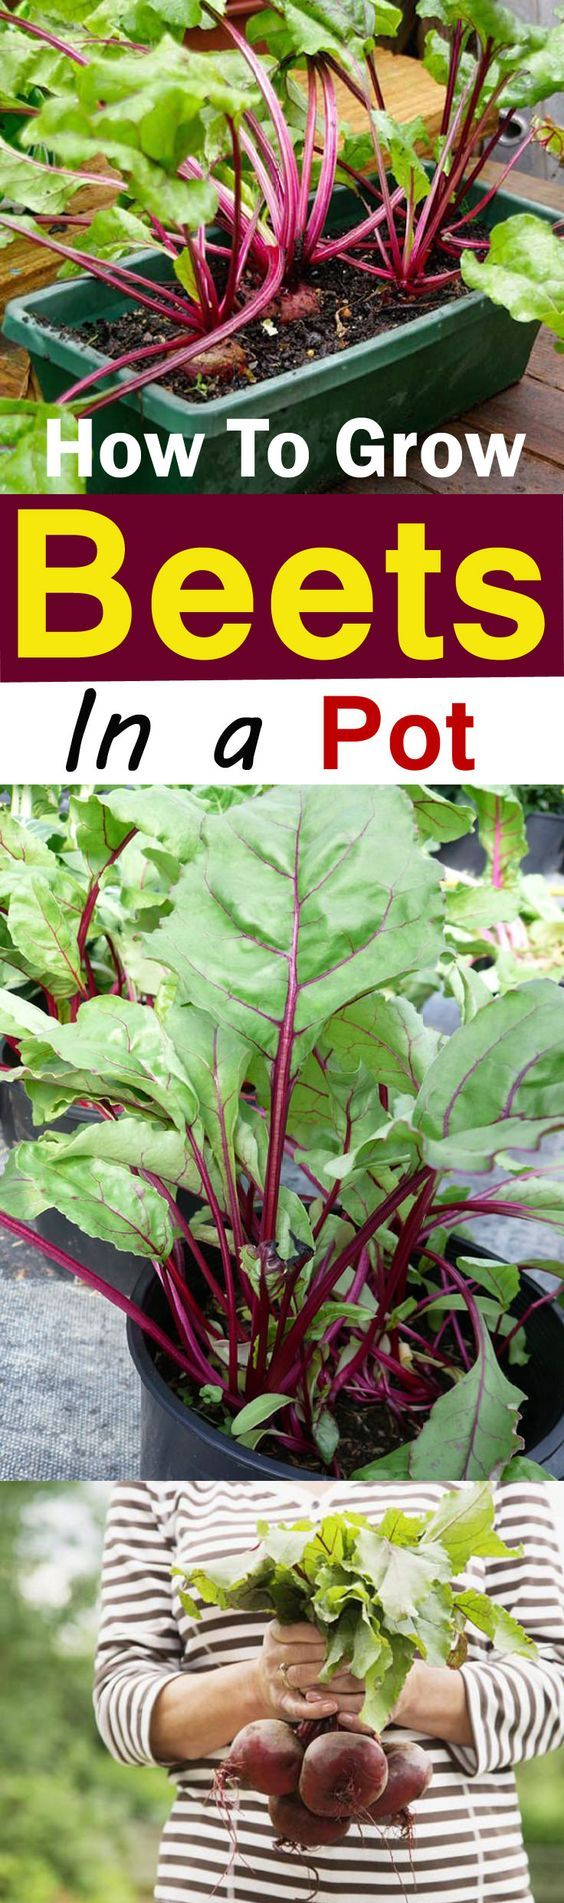 growing beets in containers how to grow beets in pots garden garten gem seanbau und g rtnern. Black Bedroom Furniture Sets. Home Design Ideas